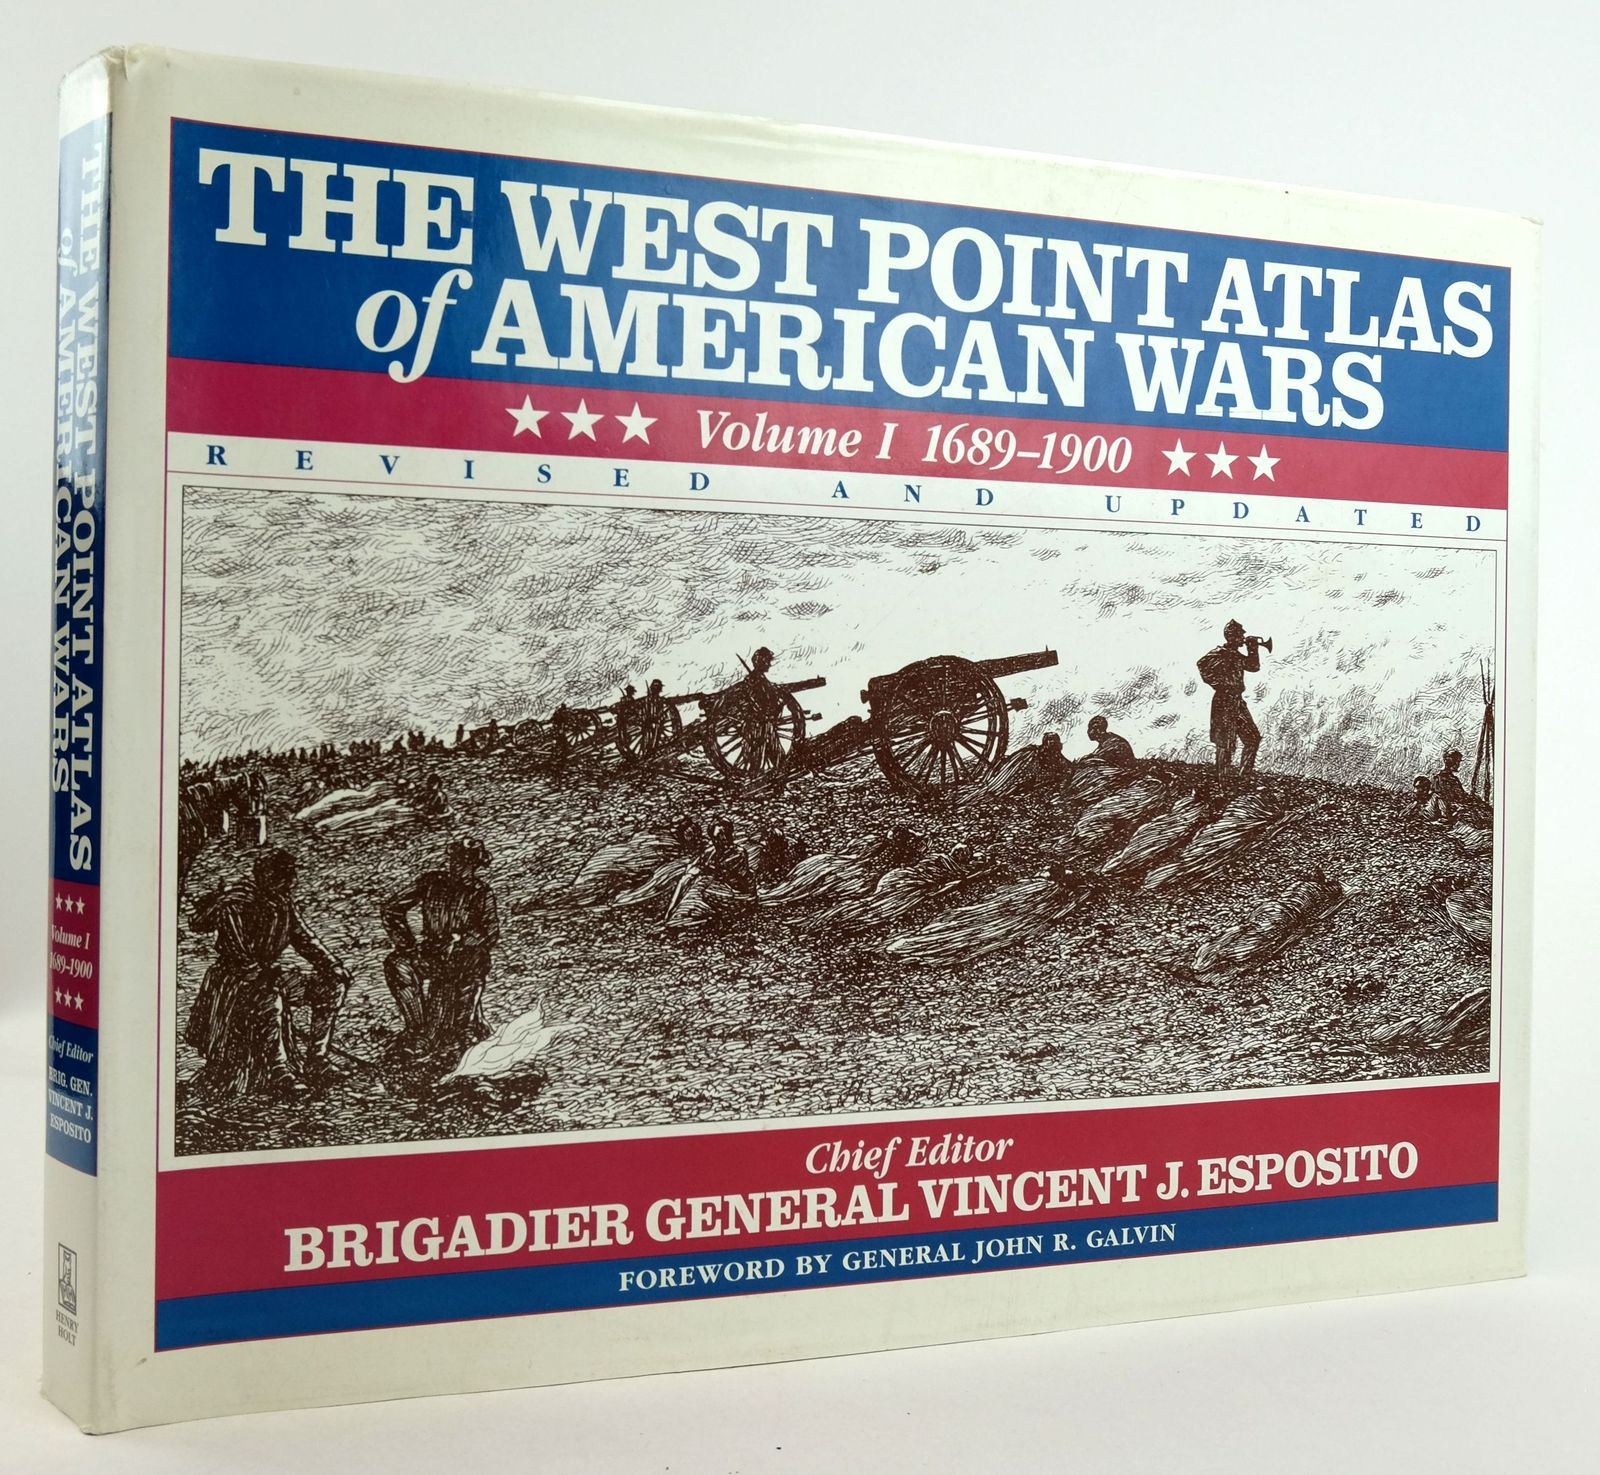 Photo of THE WEST POINT ATLAS OF AMERICAN WARS VOLUME I 1689-1900 written by Esposito, Vincent J. published by Henry Holt and Company (STOCK CODE: 1819802)  for sale by Stella & Rose's Books